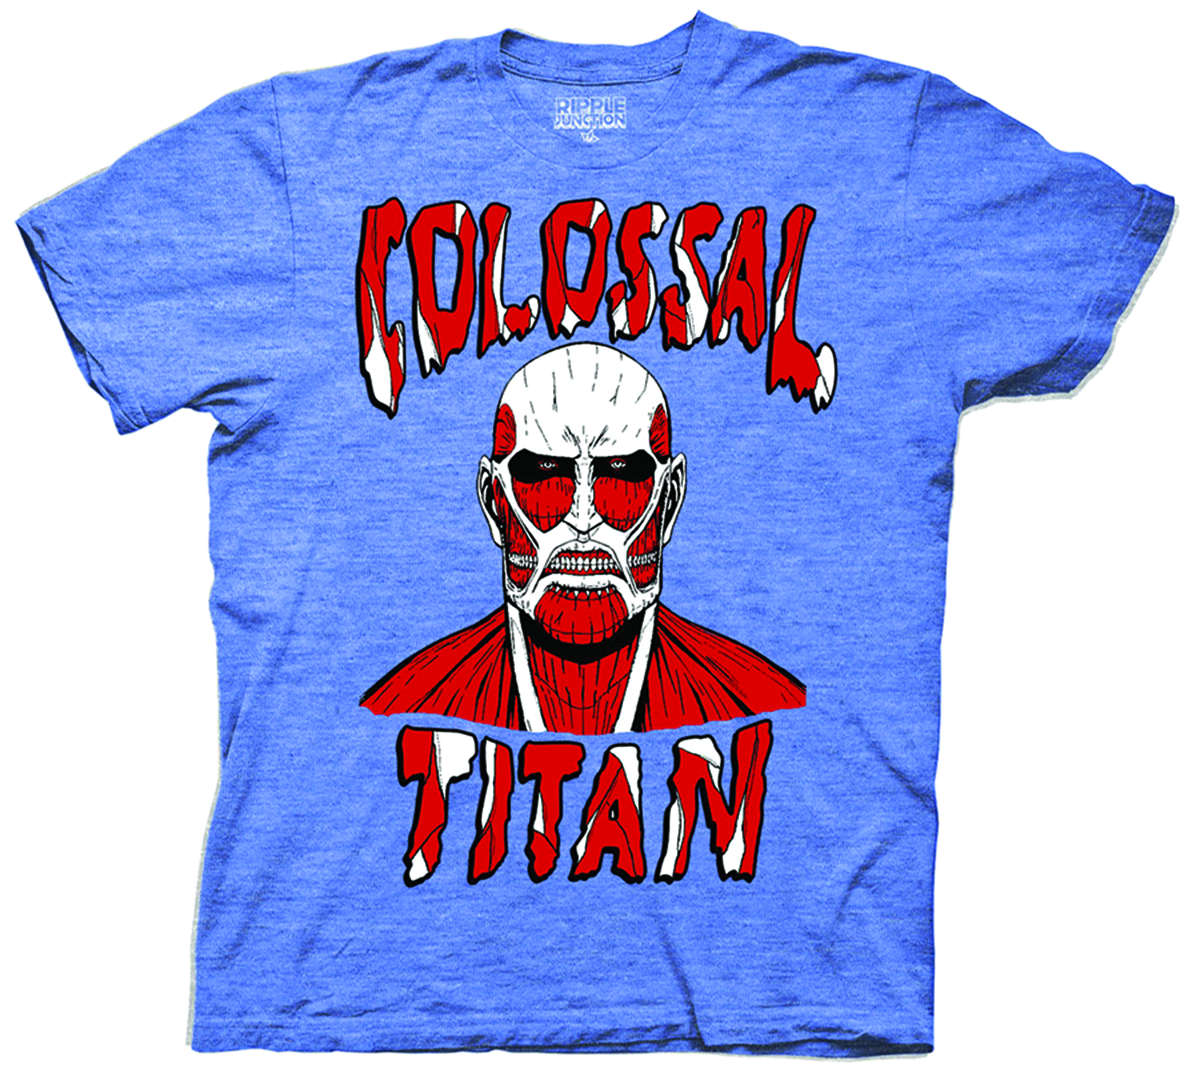 ATTACK ON TITAN COLOSSAL TITAN ROYAL T/S MED